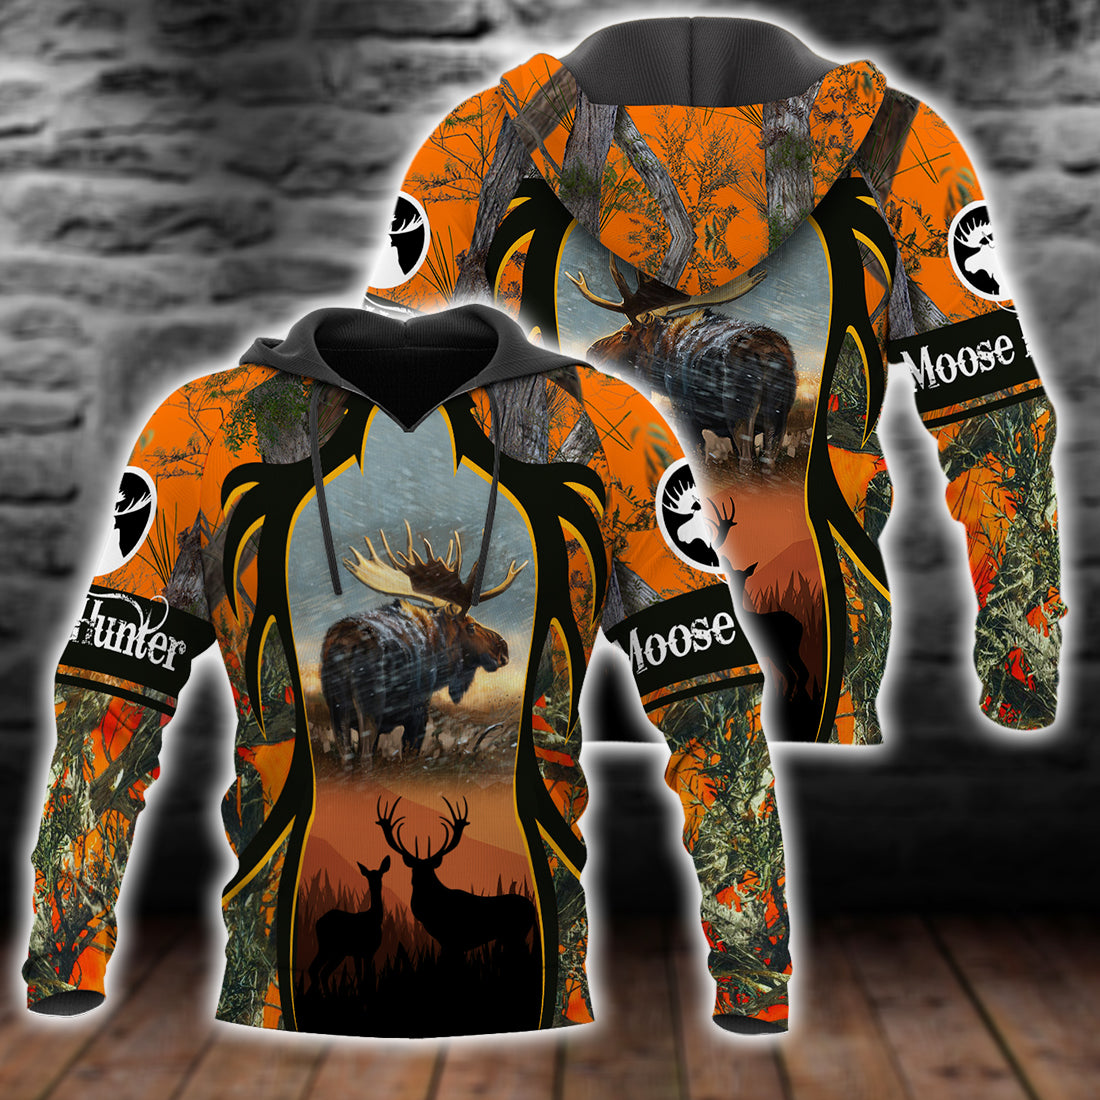 Moose Hunting Camo All Over Print Shirt For Men And Women - luxamz